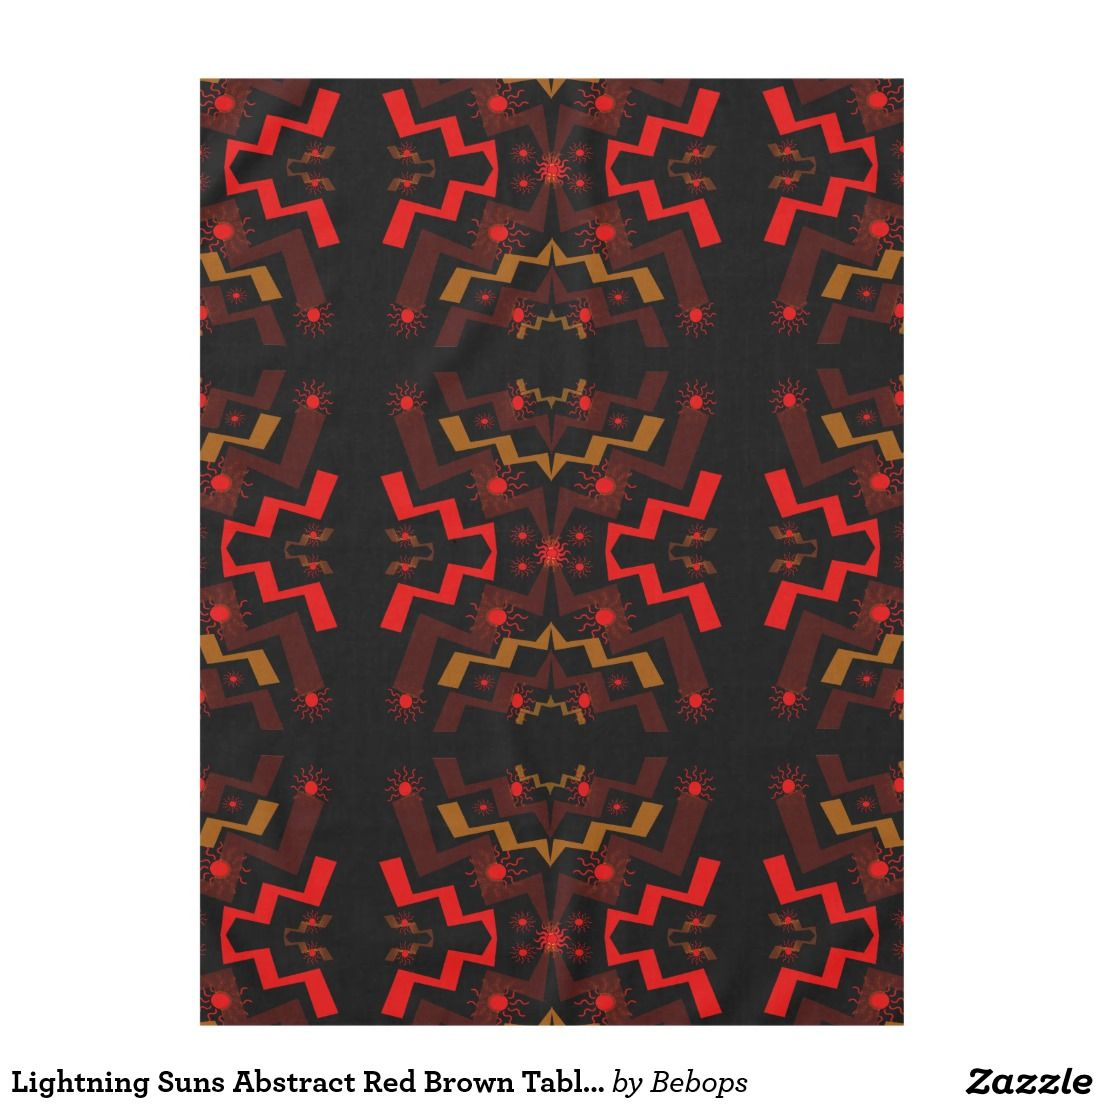 #Lightning #Suns Abstract Red Brown Tablecloth @bebopsplace